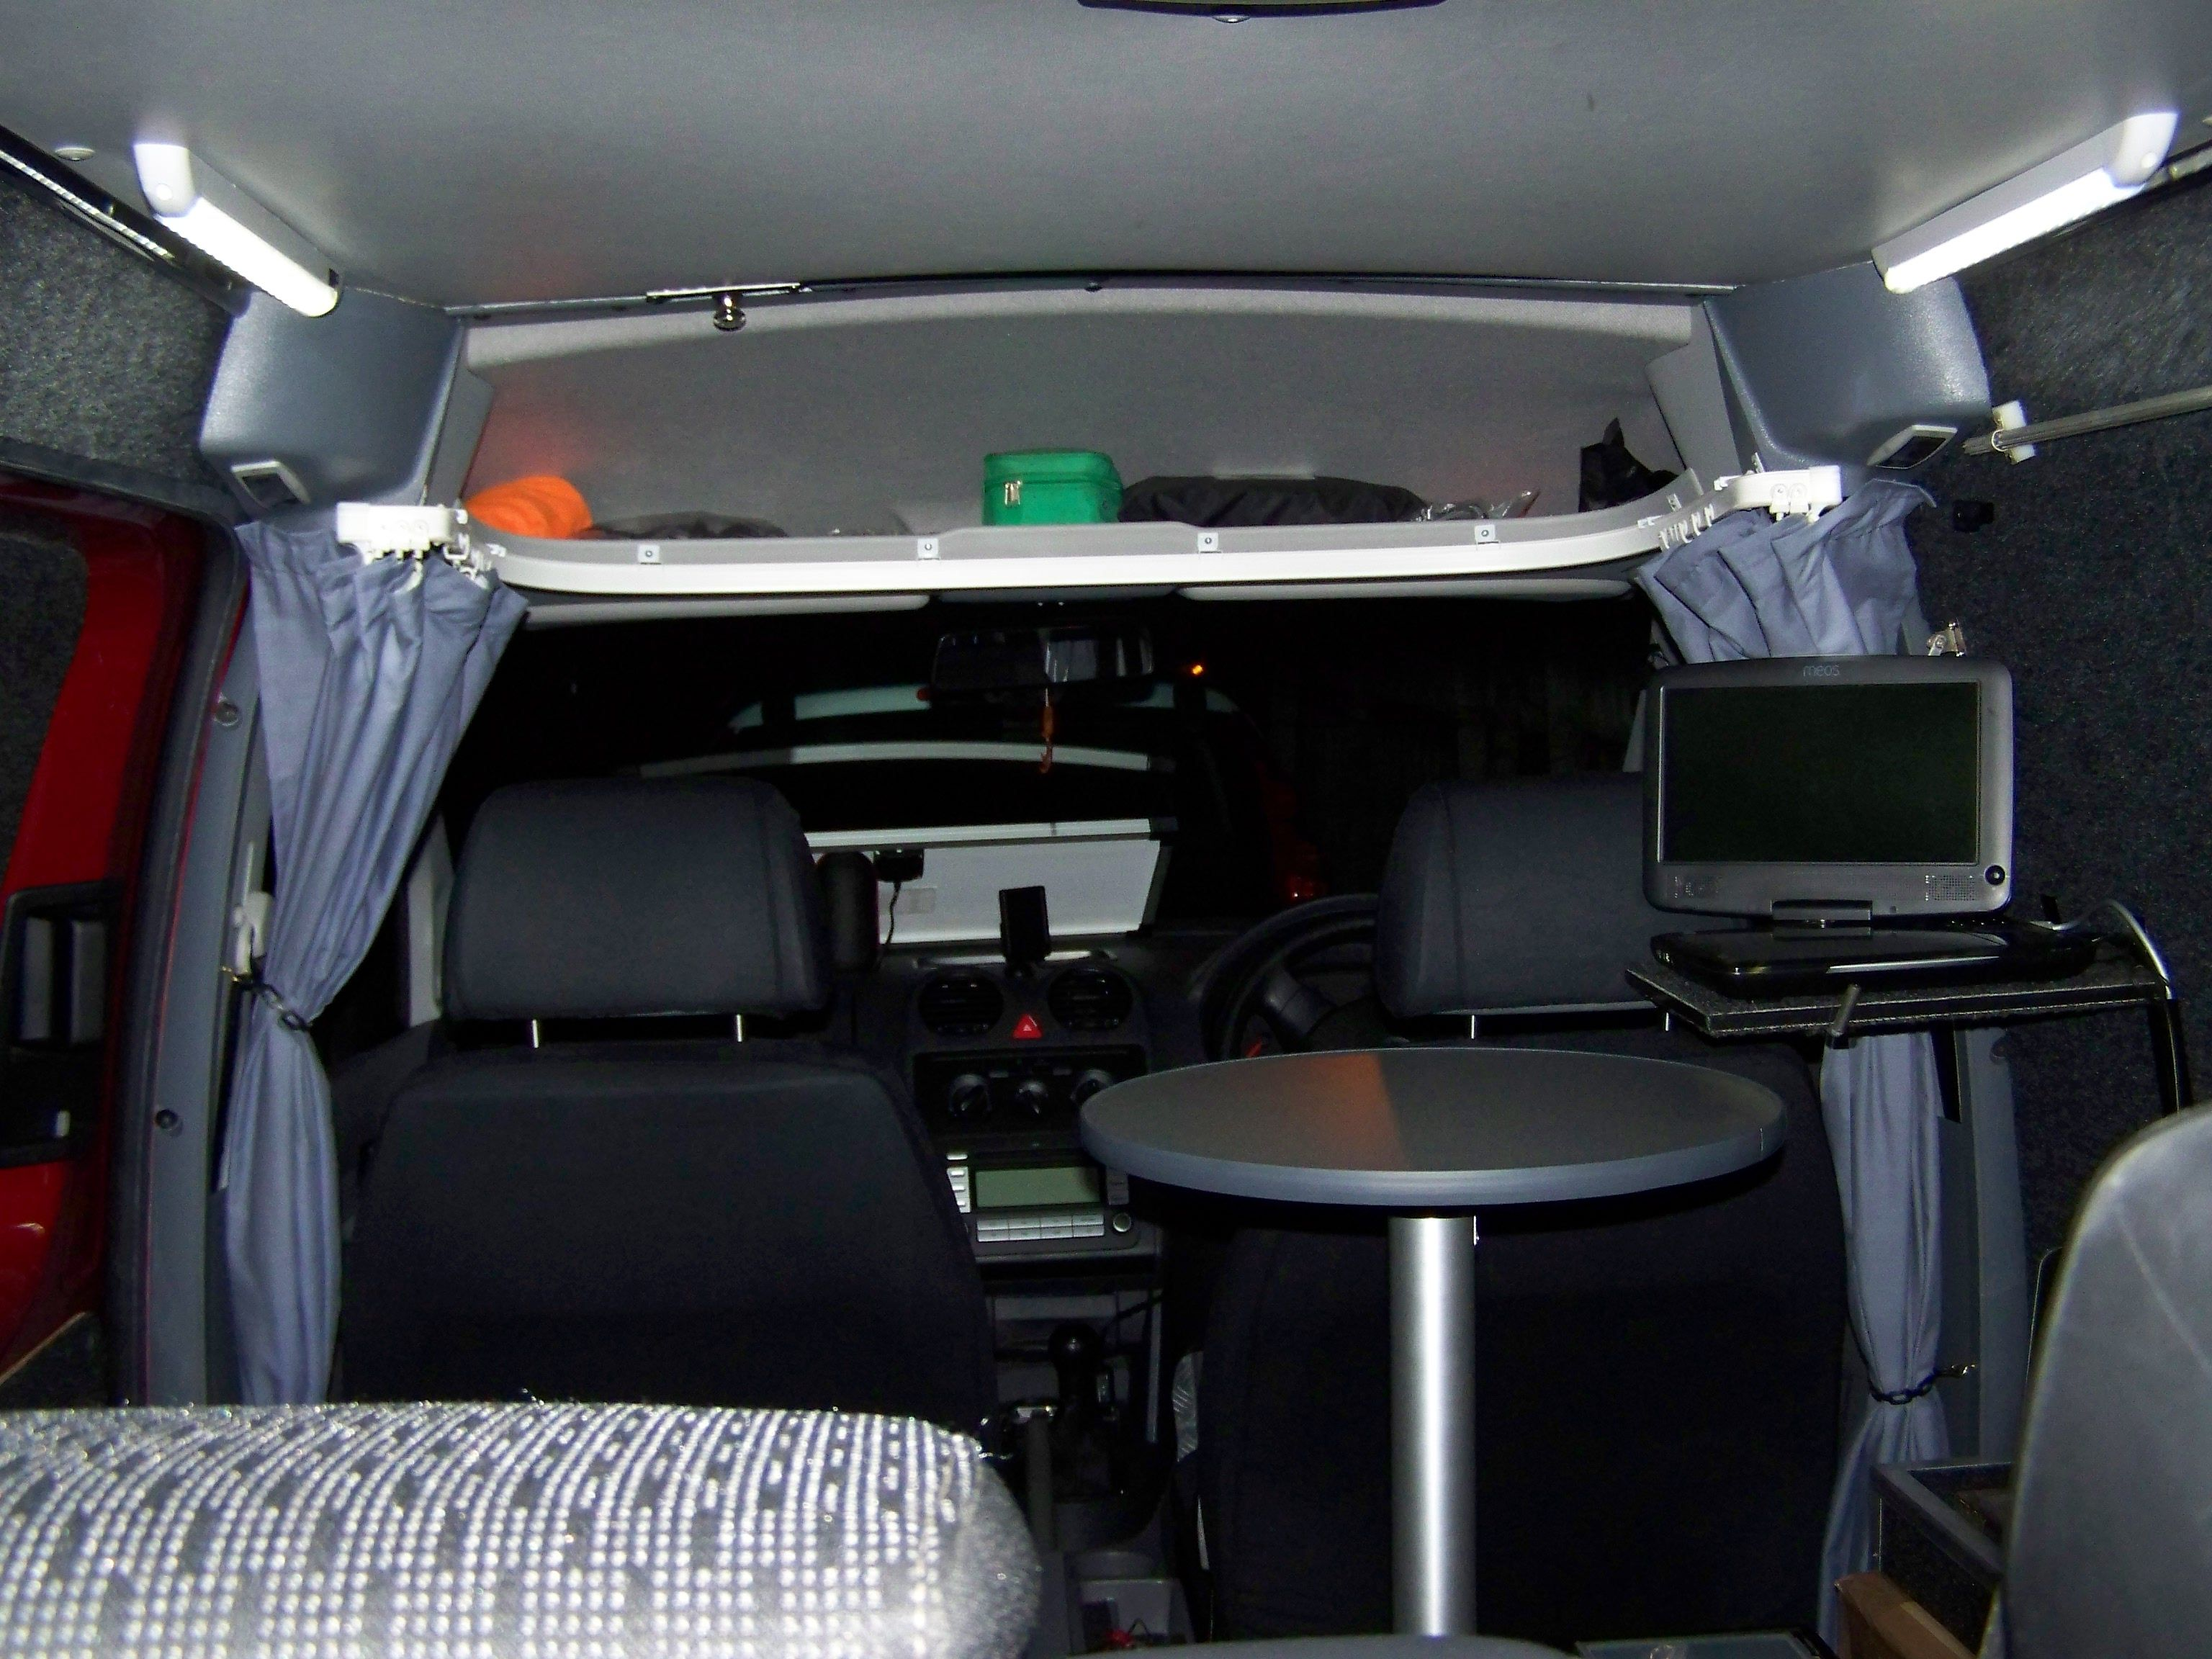 VW CADDY SOLAR CAMPER LED Interior lighting & VW CADDY SOLAR CAMPER LED Interior lighting | MY VW CADDY SOLAR ...